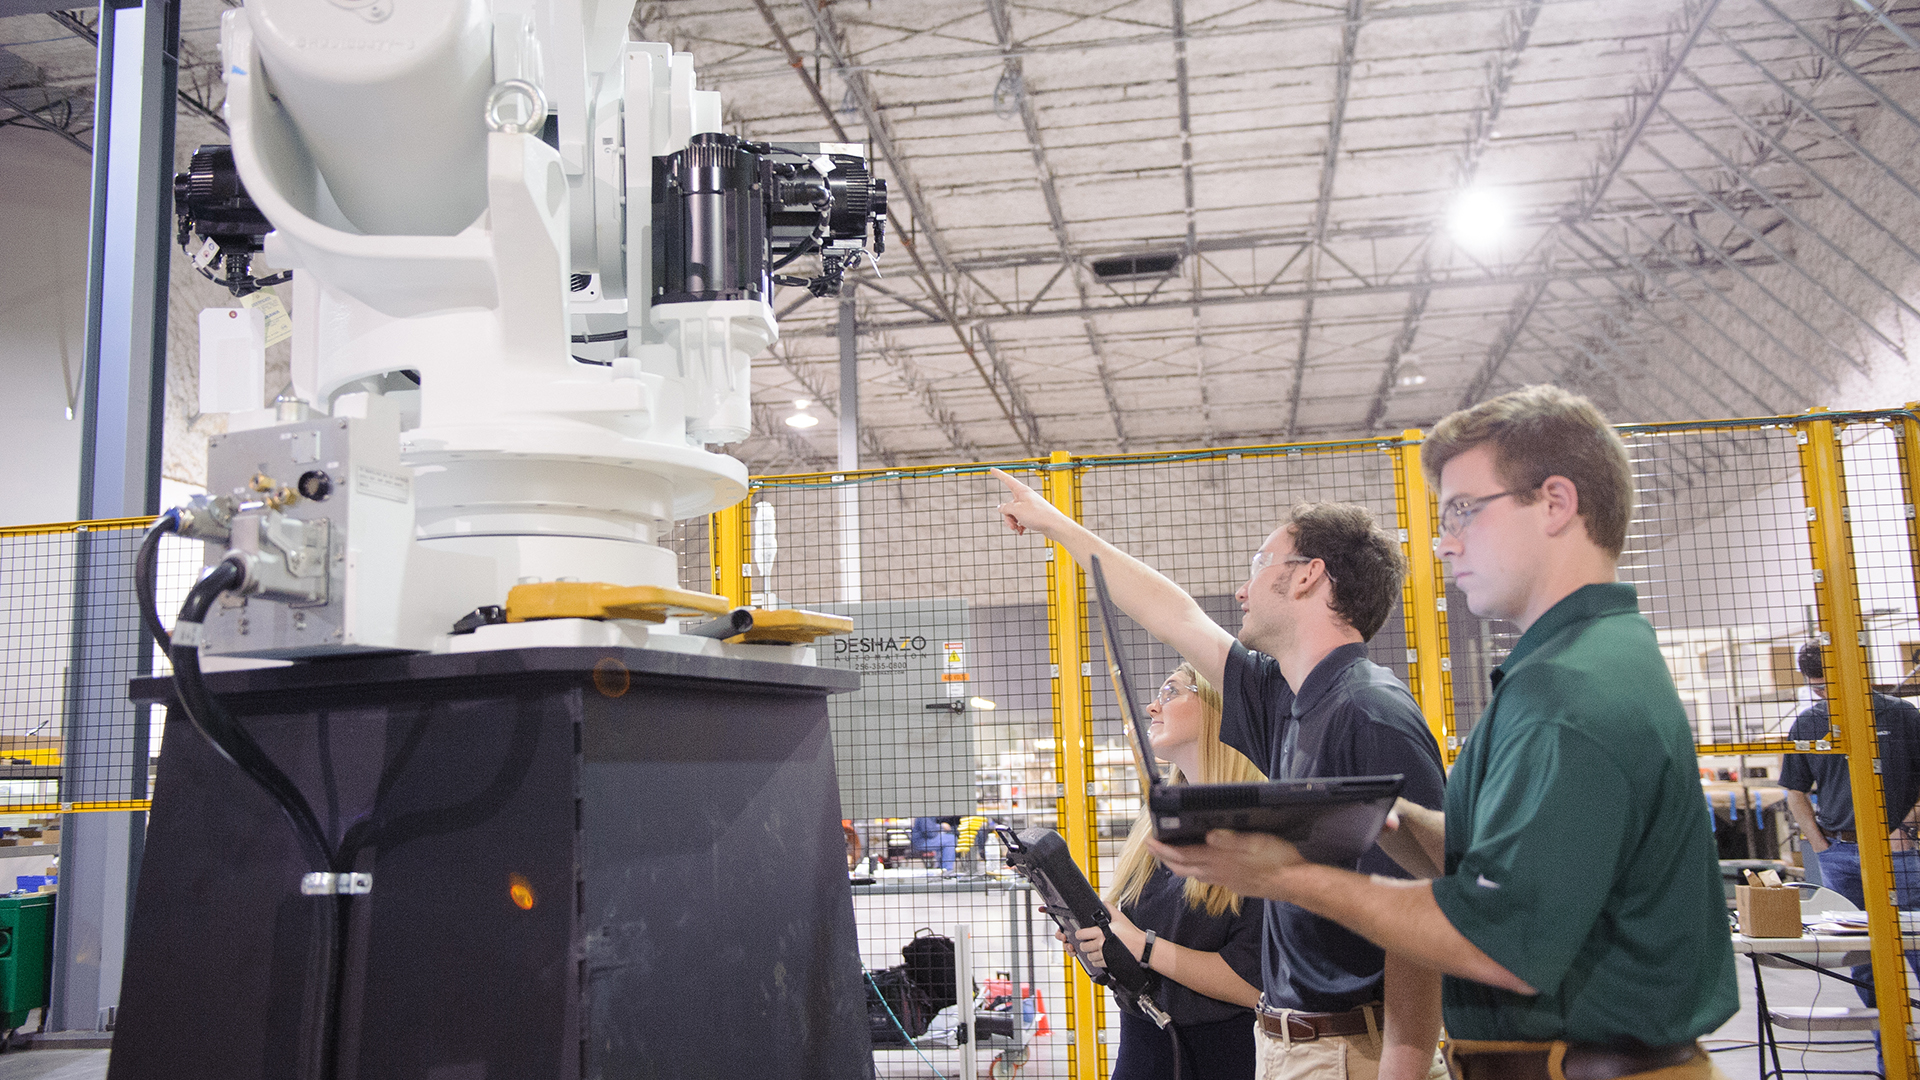 Three people look up at a big piece of machinery in a lab.